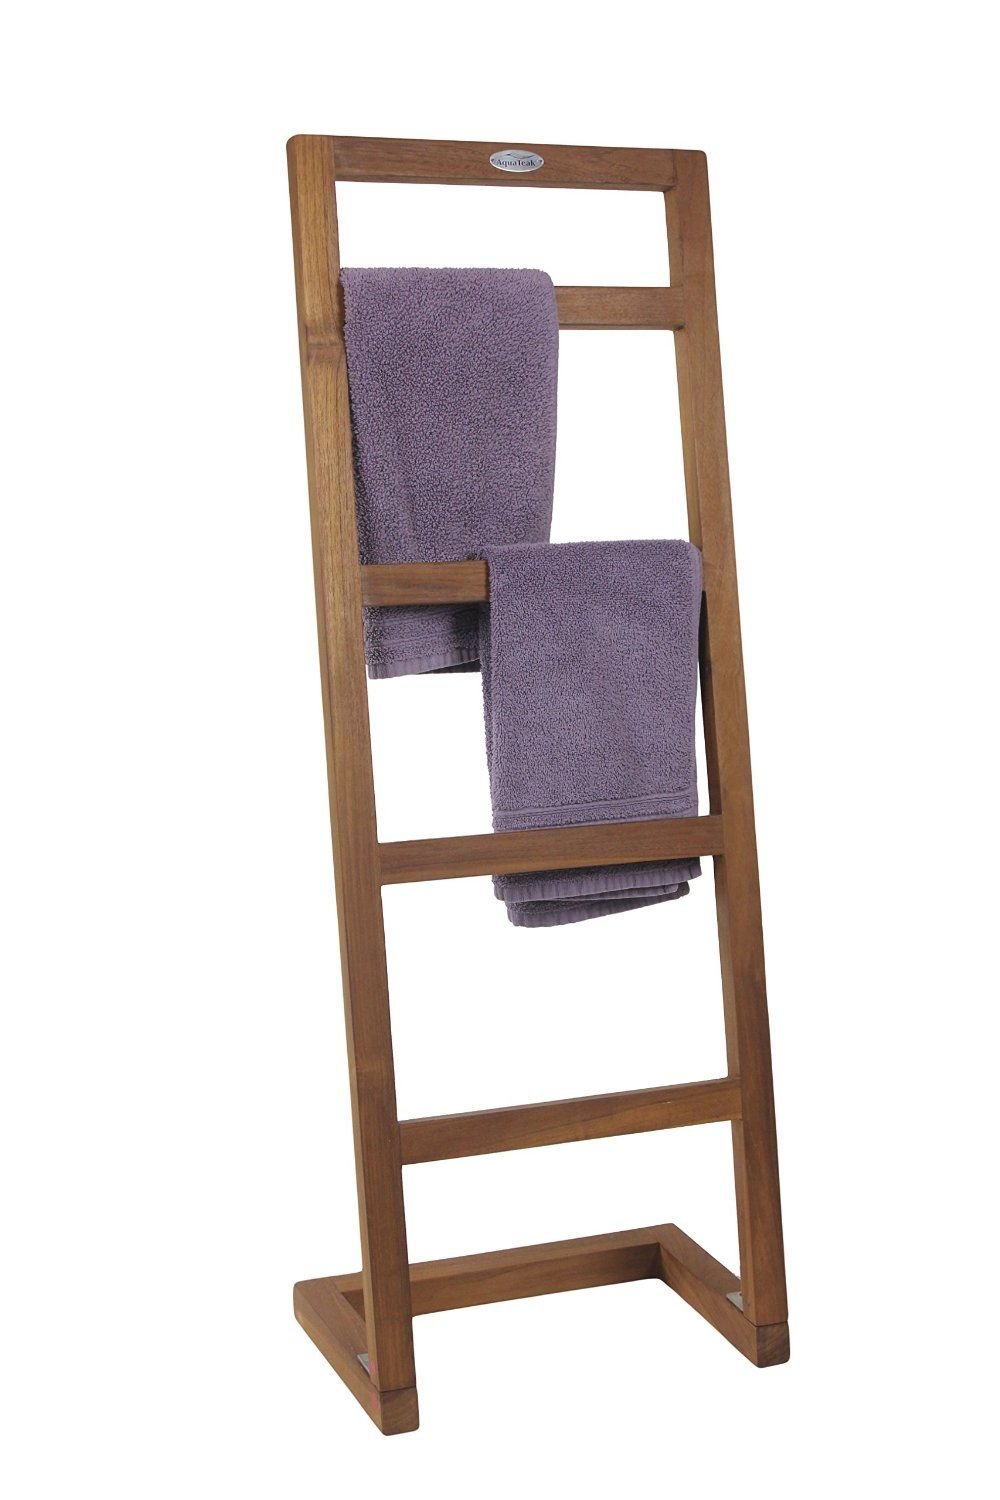 Angled Teak Towel Stand From The Spa Collection Free Standing Racks